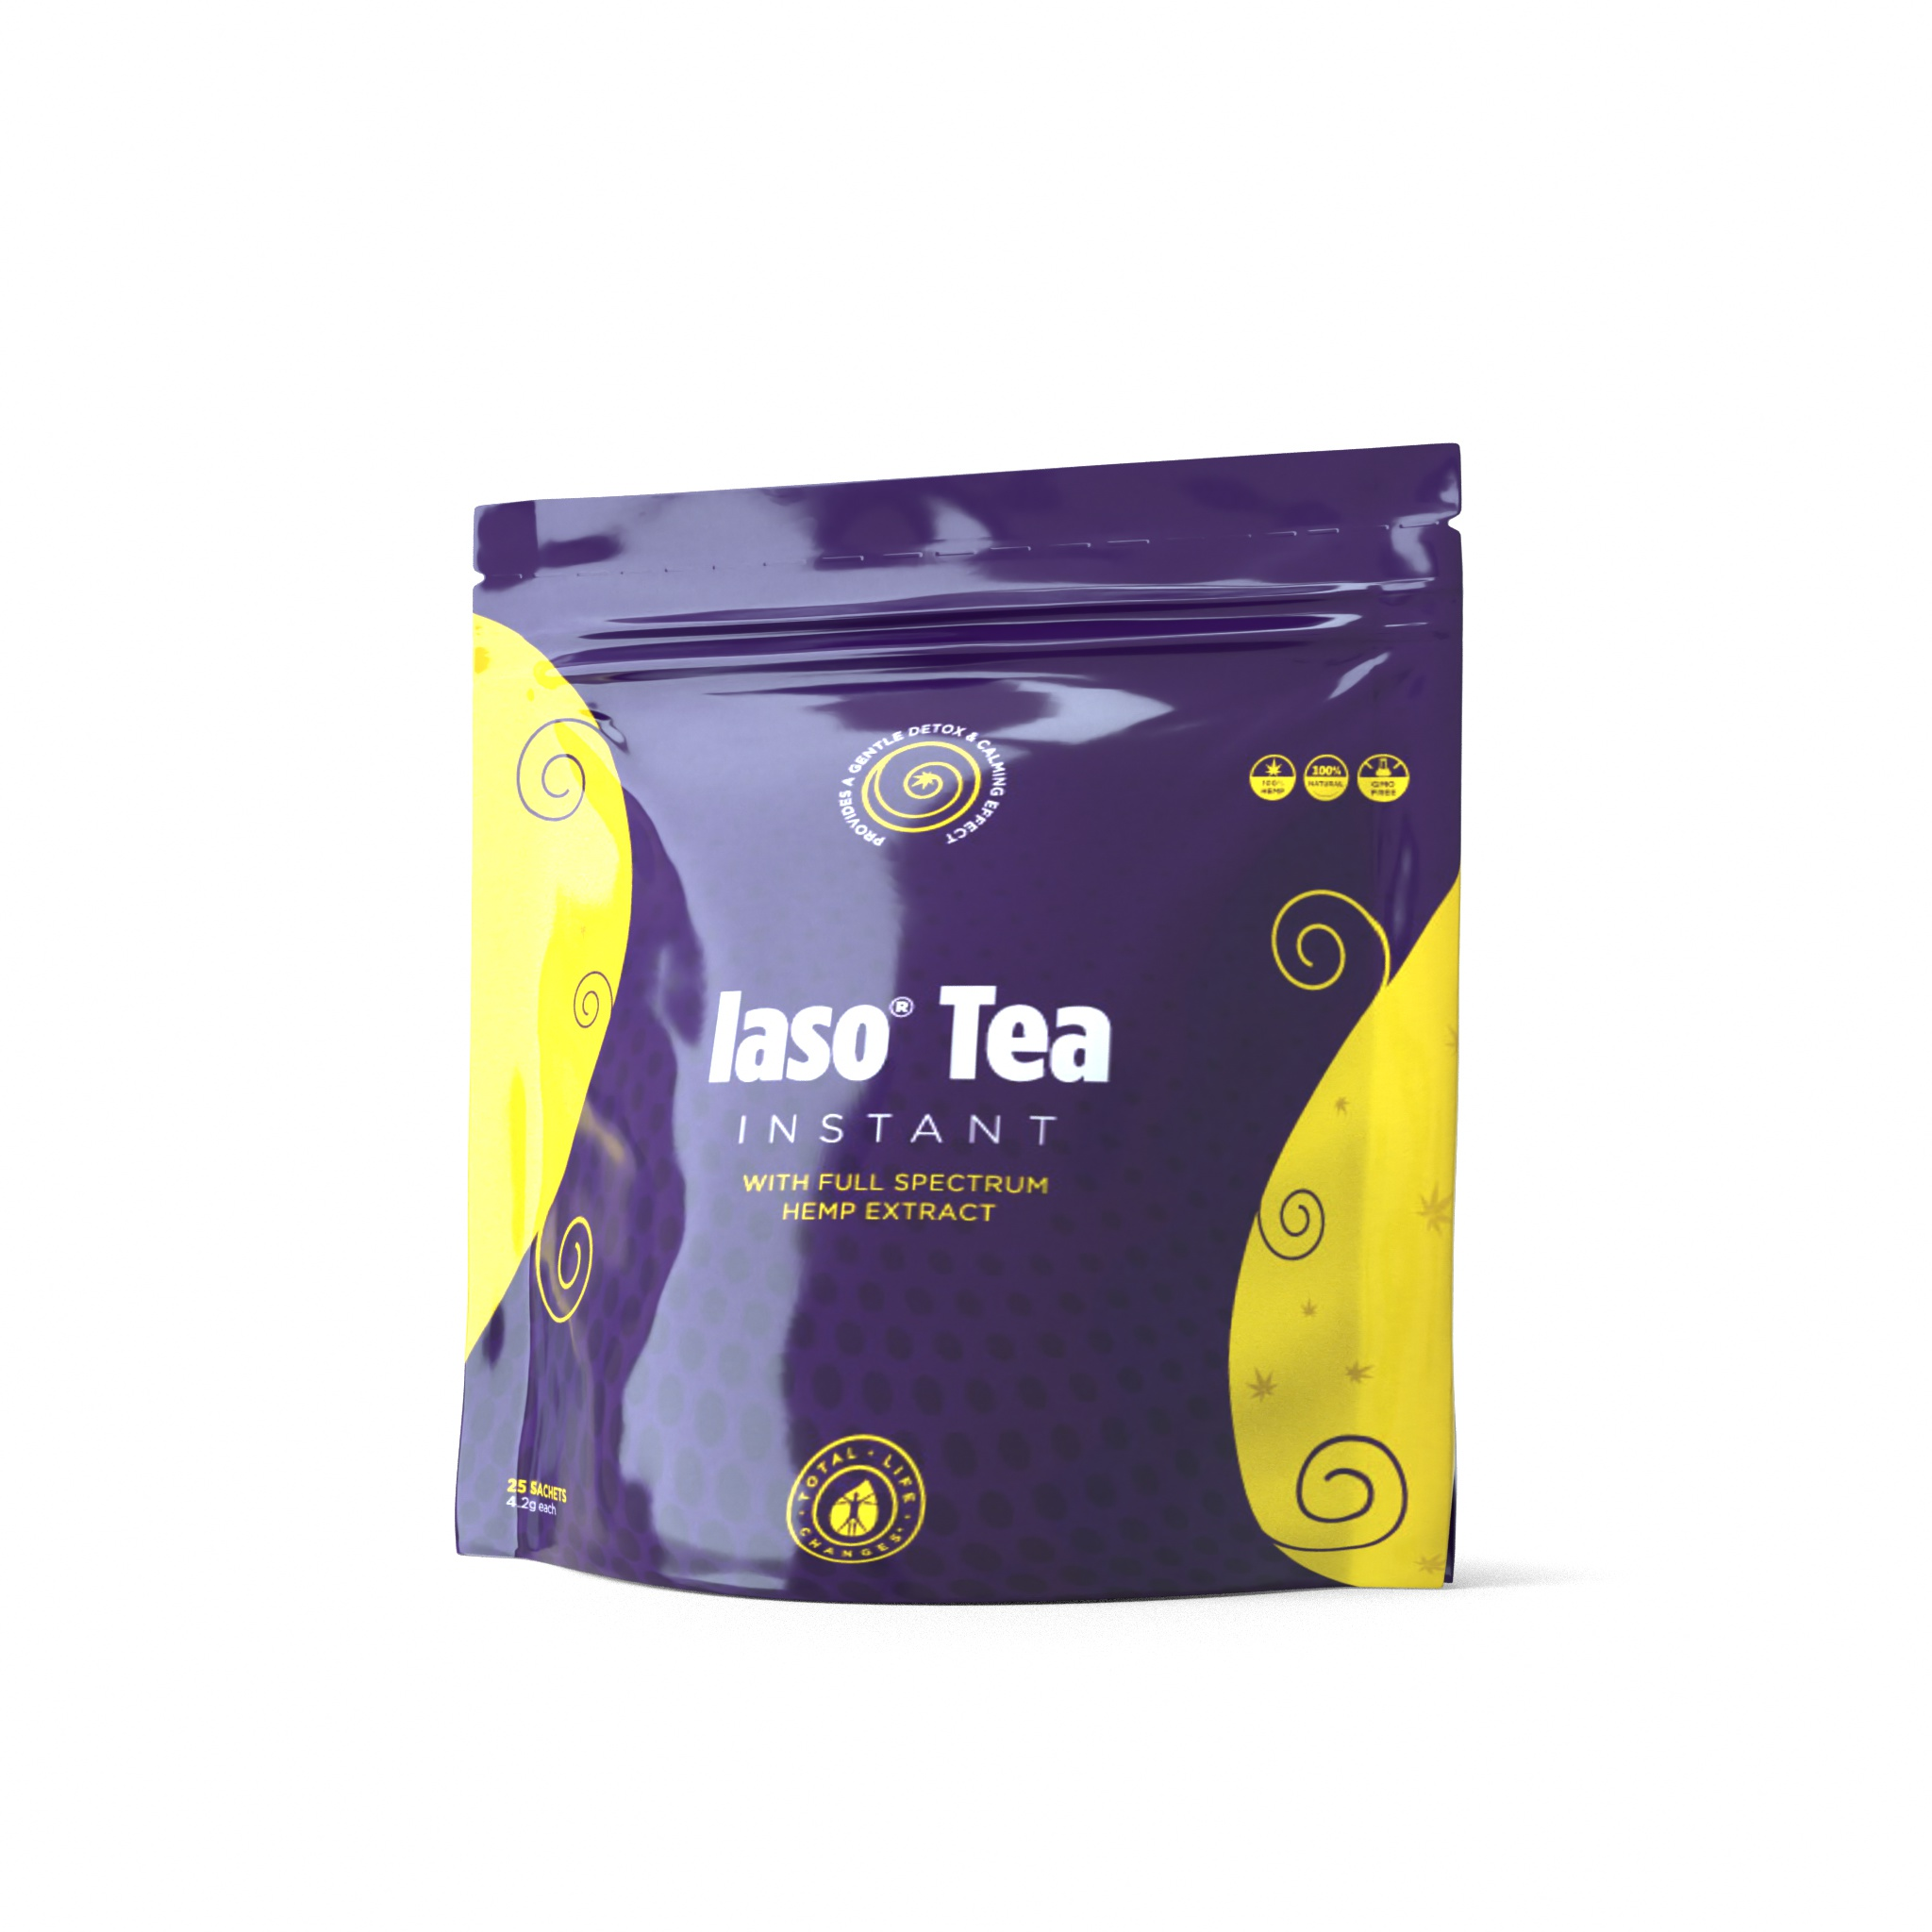 LEMON - Iaso® Tea Instant - $59.95 USD